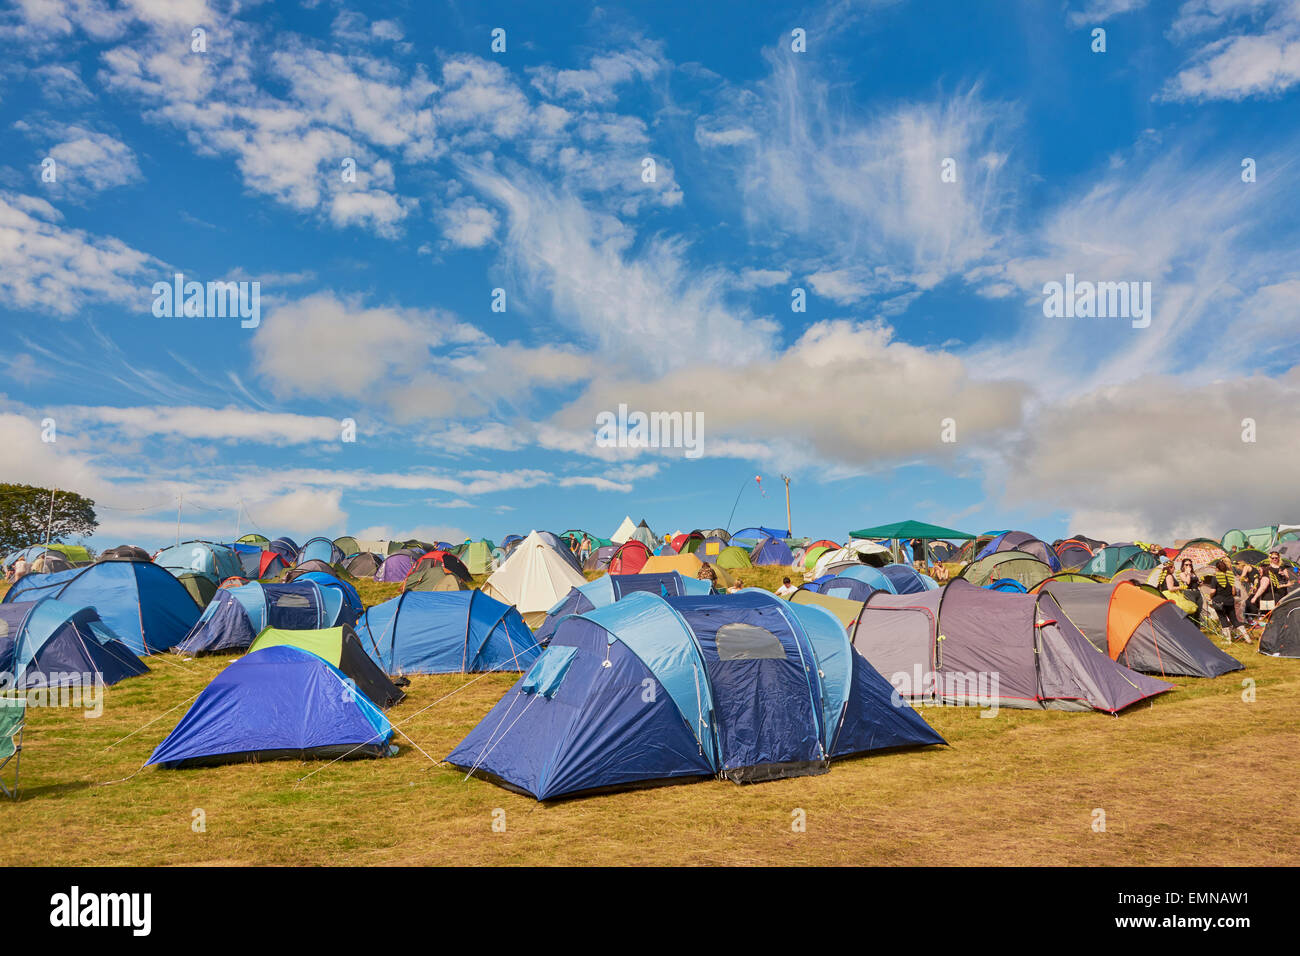 Camping site at Festival No.6, in Portmeirion, Wales, showing different coloured tents against a blue sky with fluffy - Stock Image